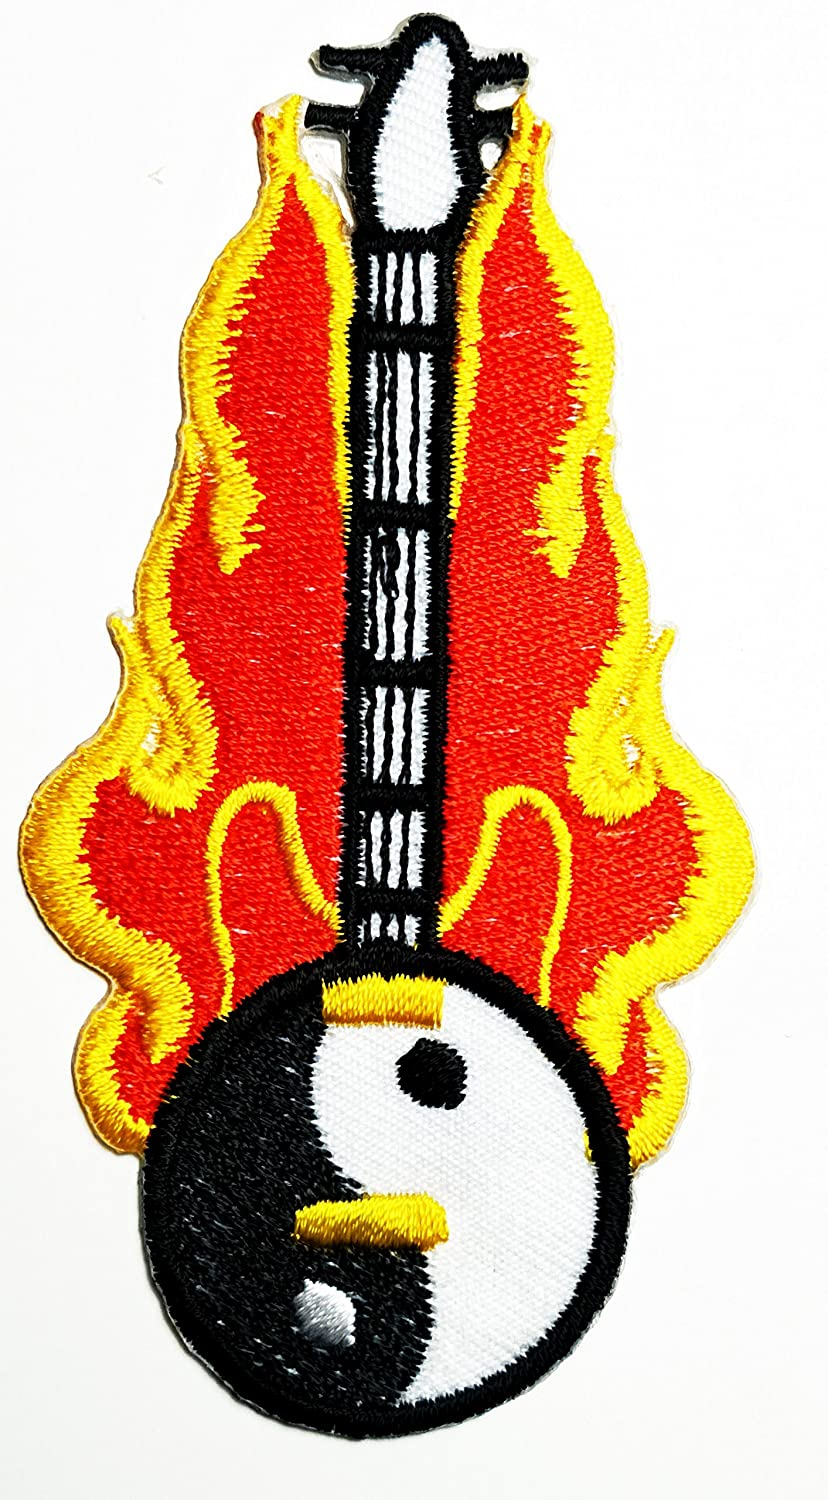 HHO Yin Yang guitar fire Tao Dao Chinese peace trance boho retro hippie Patch Embroidered DIY Patches, Cute Applique Sew Iron on Kids Craft Patch for Bags Jackets Jeans Clothes